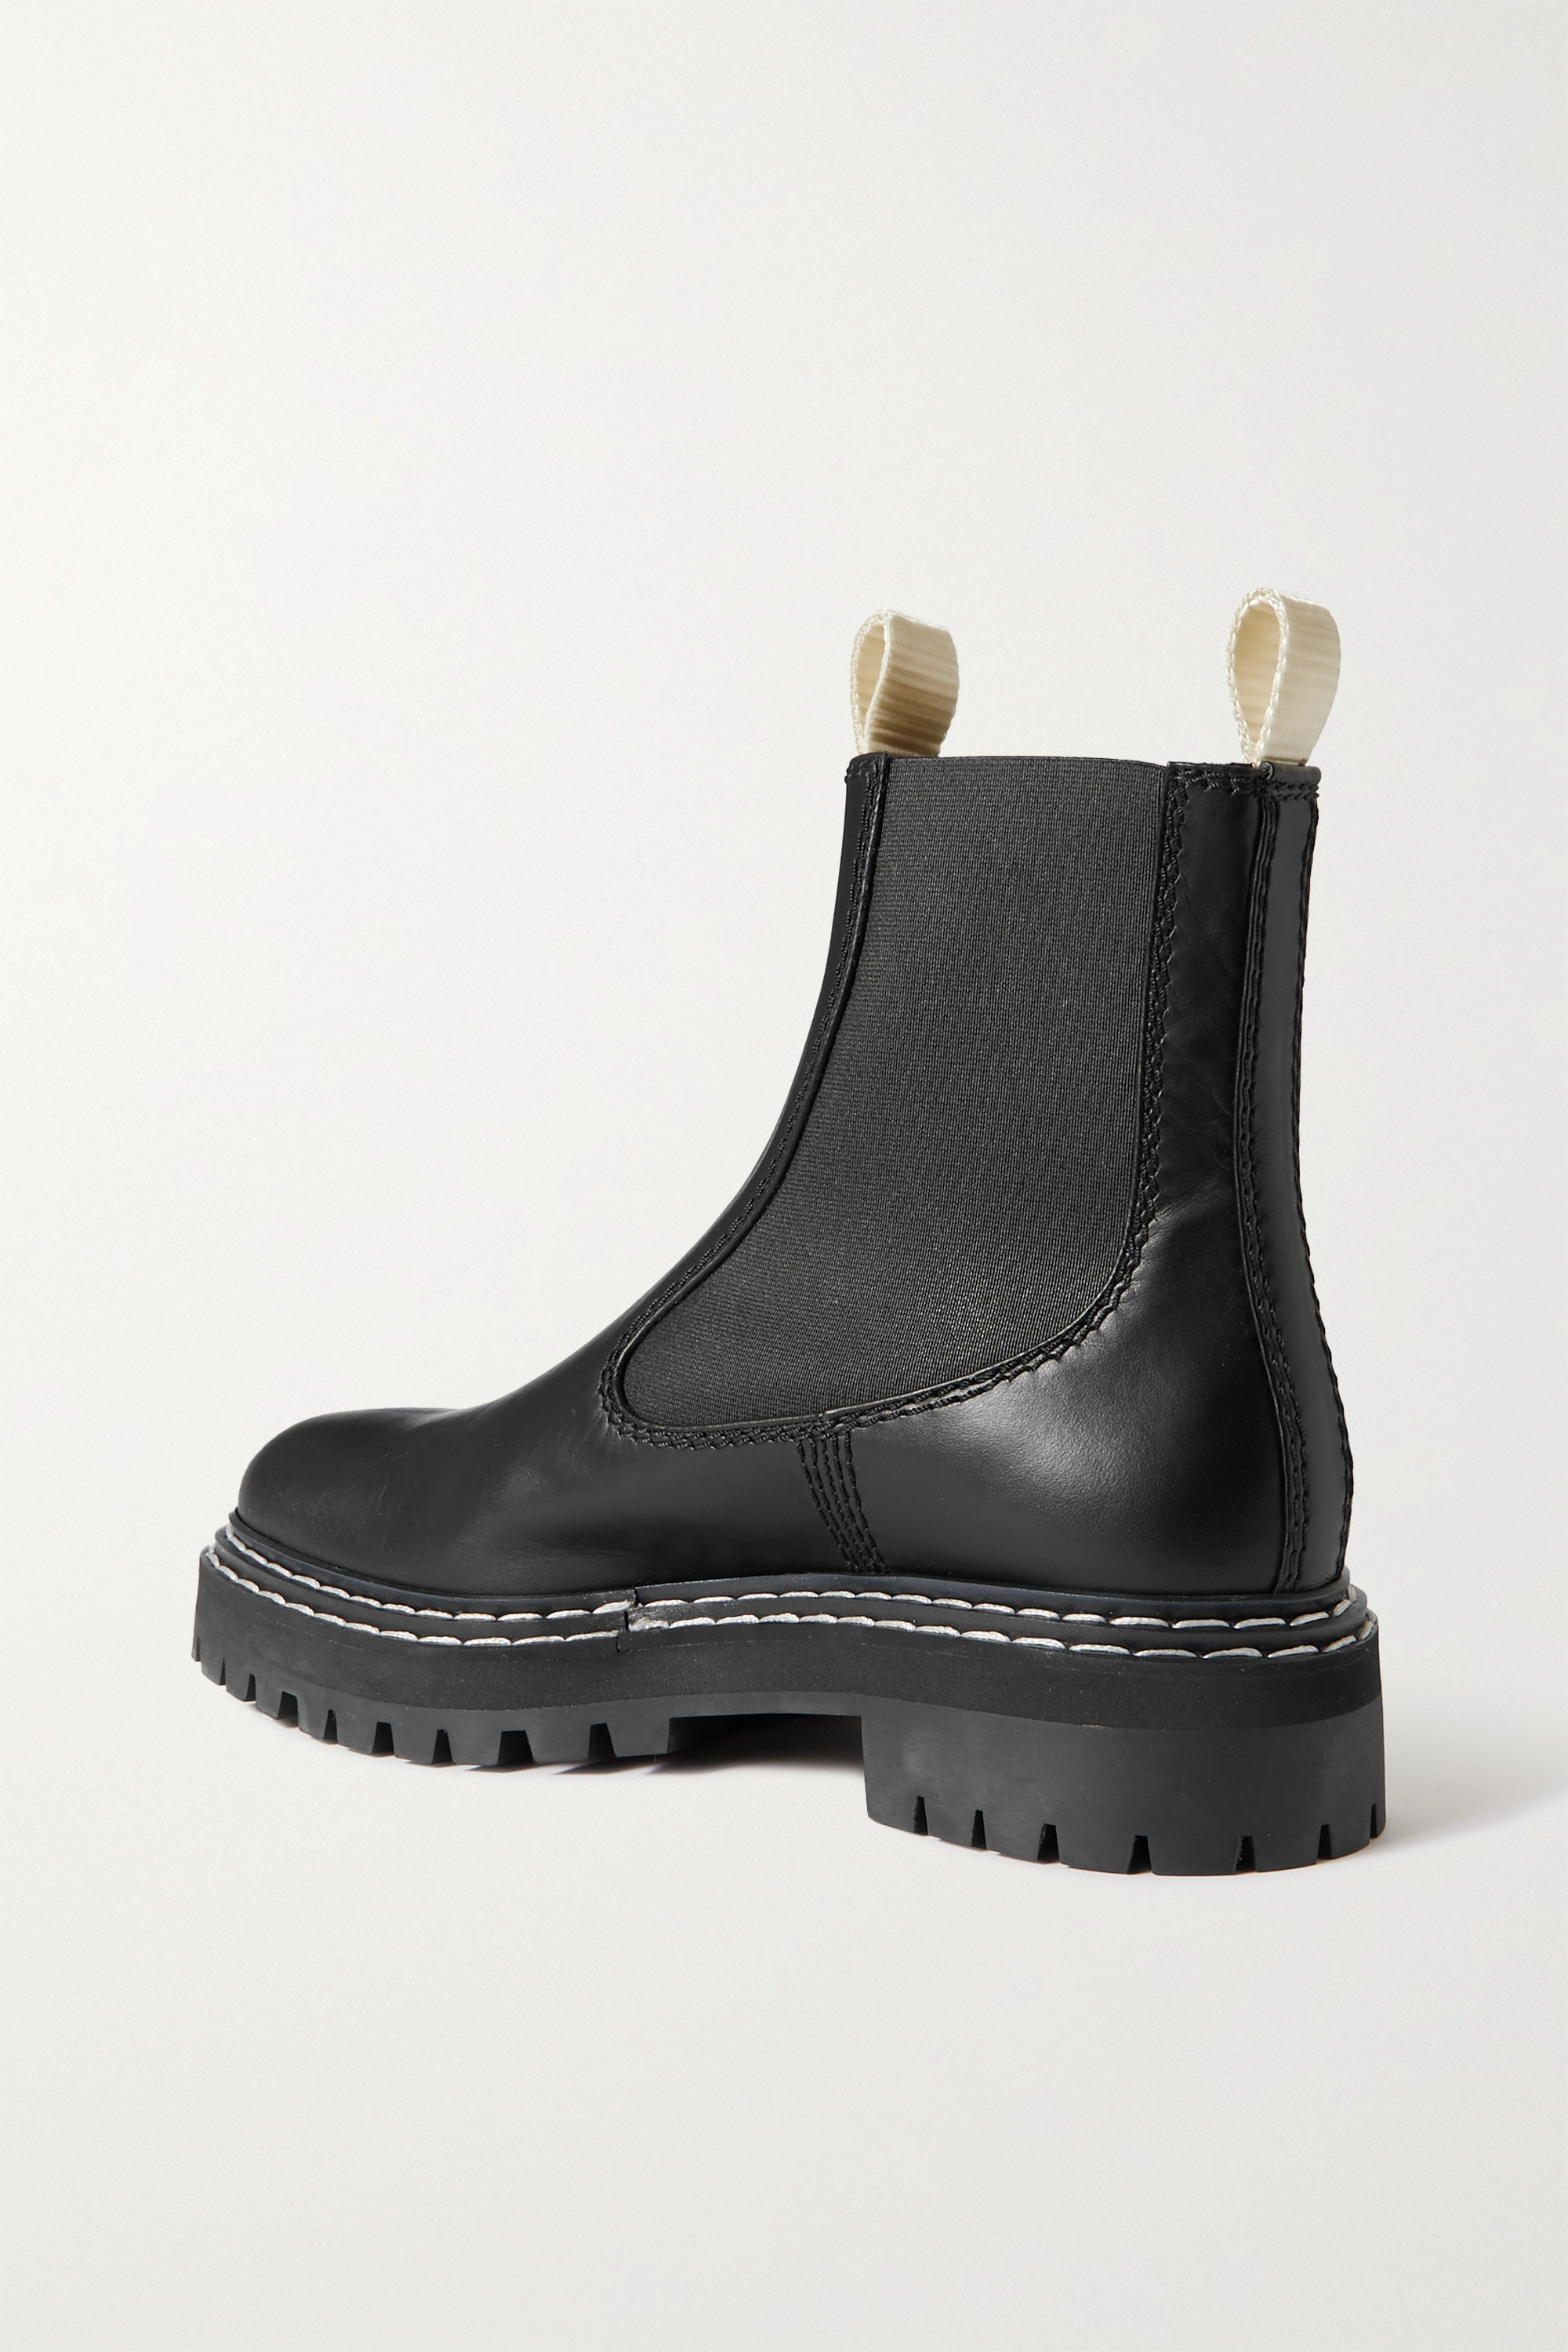 Proenza Schouler Topstitched leather Chelsea boots